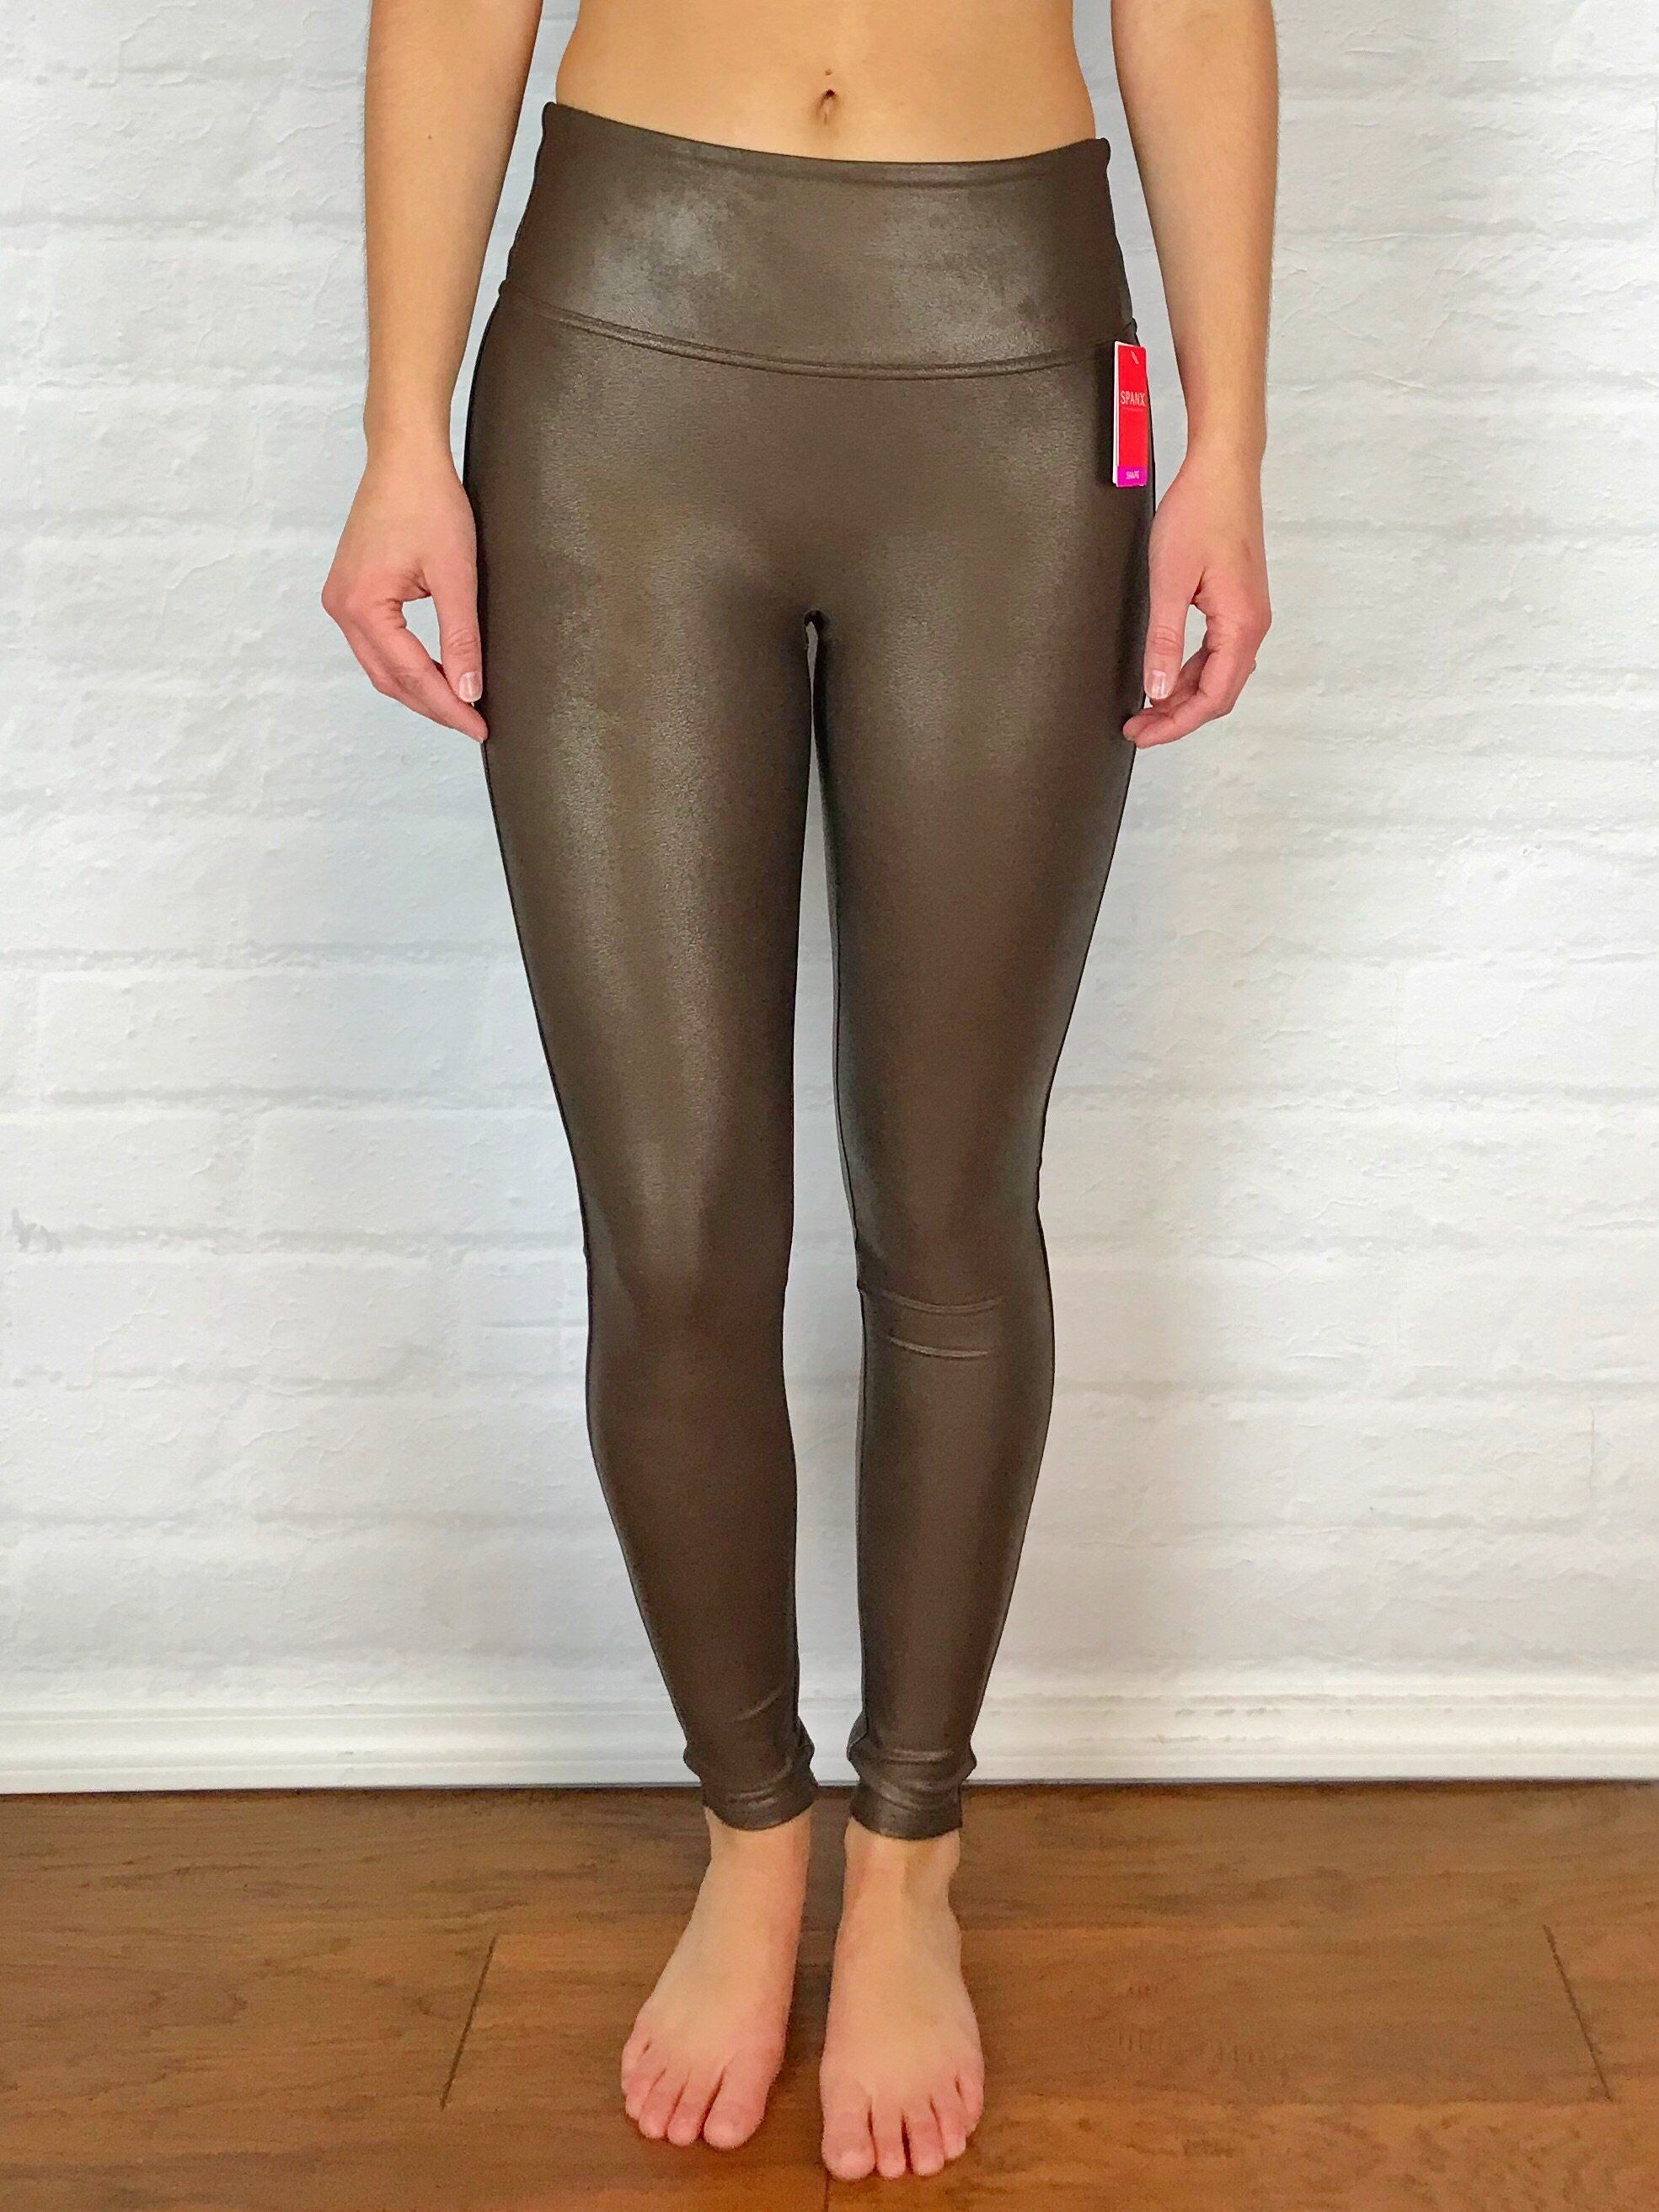 299fac039bf1e Spanx Faux Leather Leggings in Bronze Metal | Fashion | Spanx faux ...